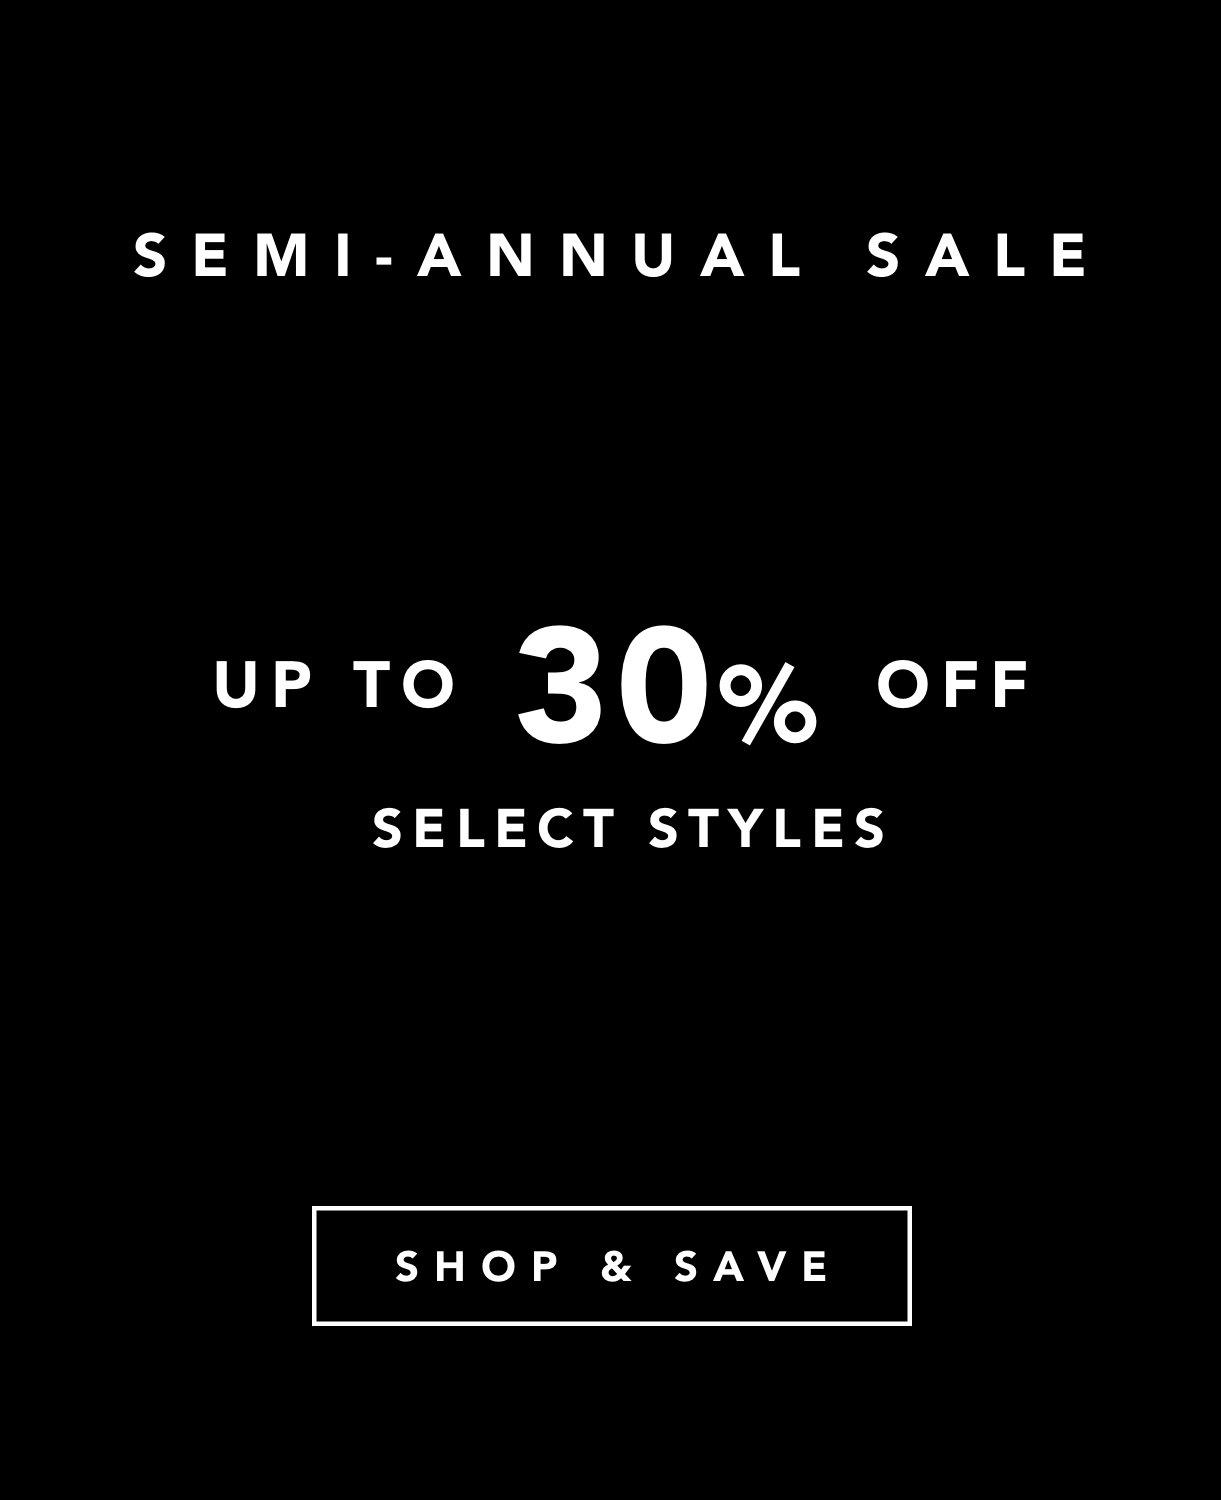 Shop 30% Off select styles during the Semi-Annual Sale through July 9th